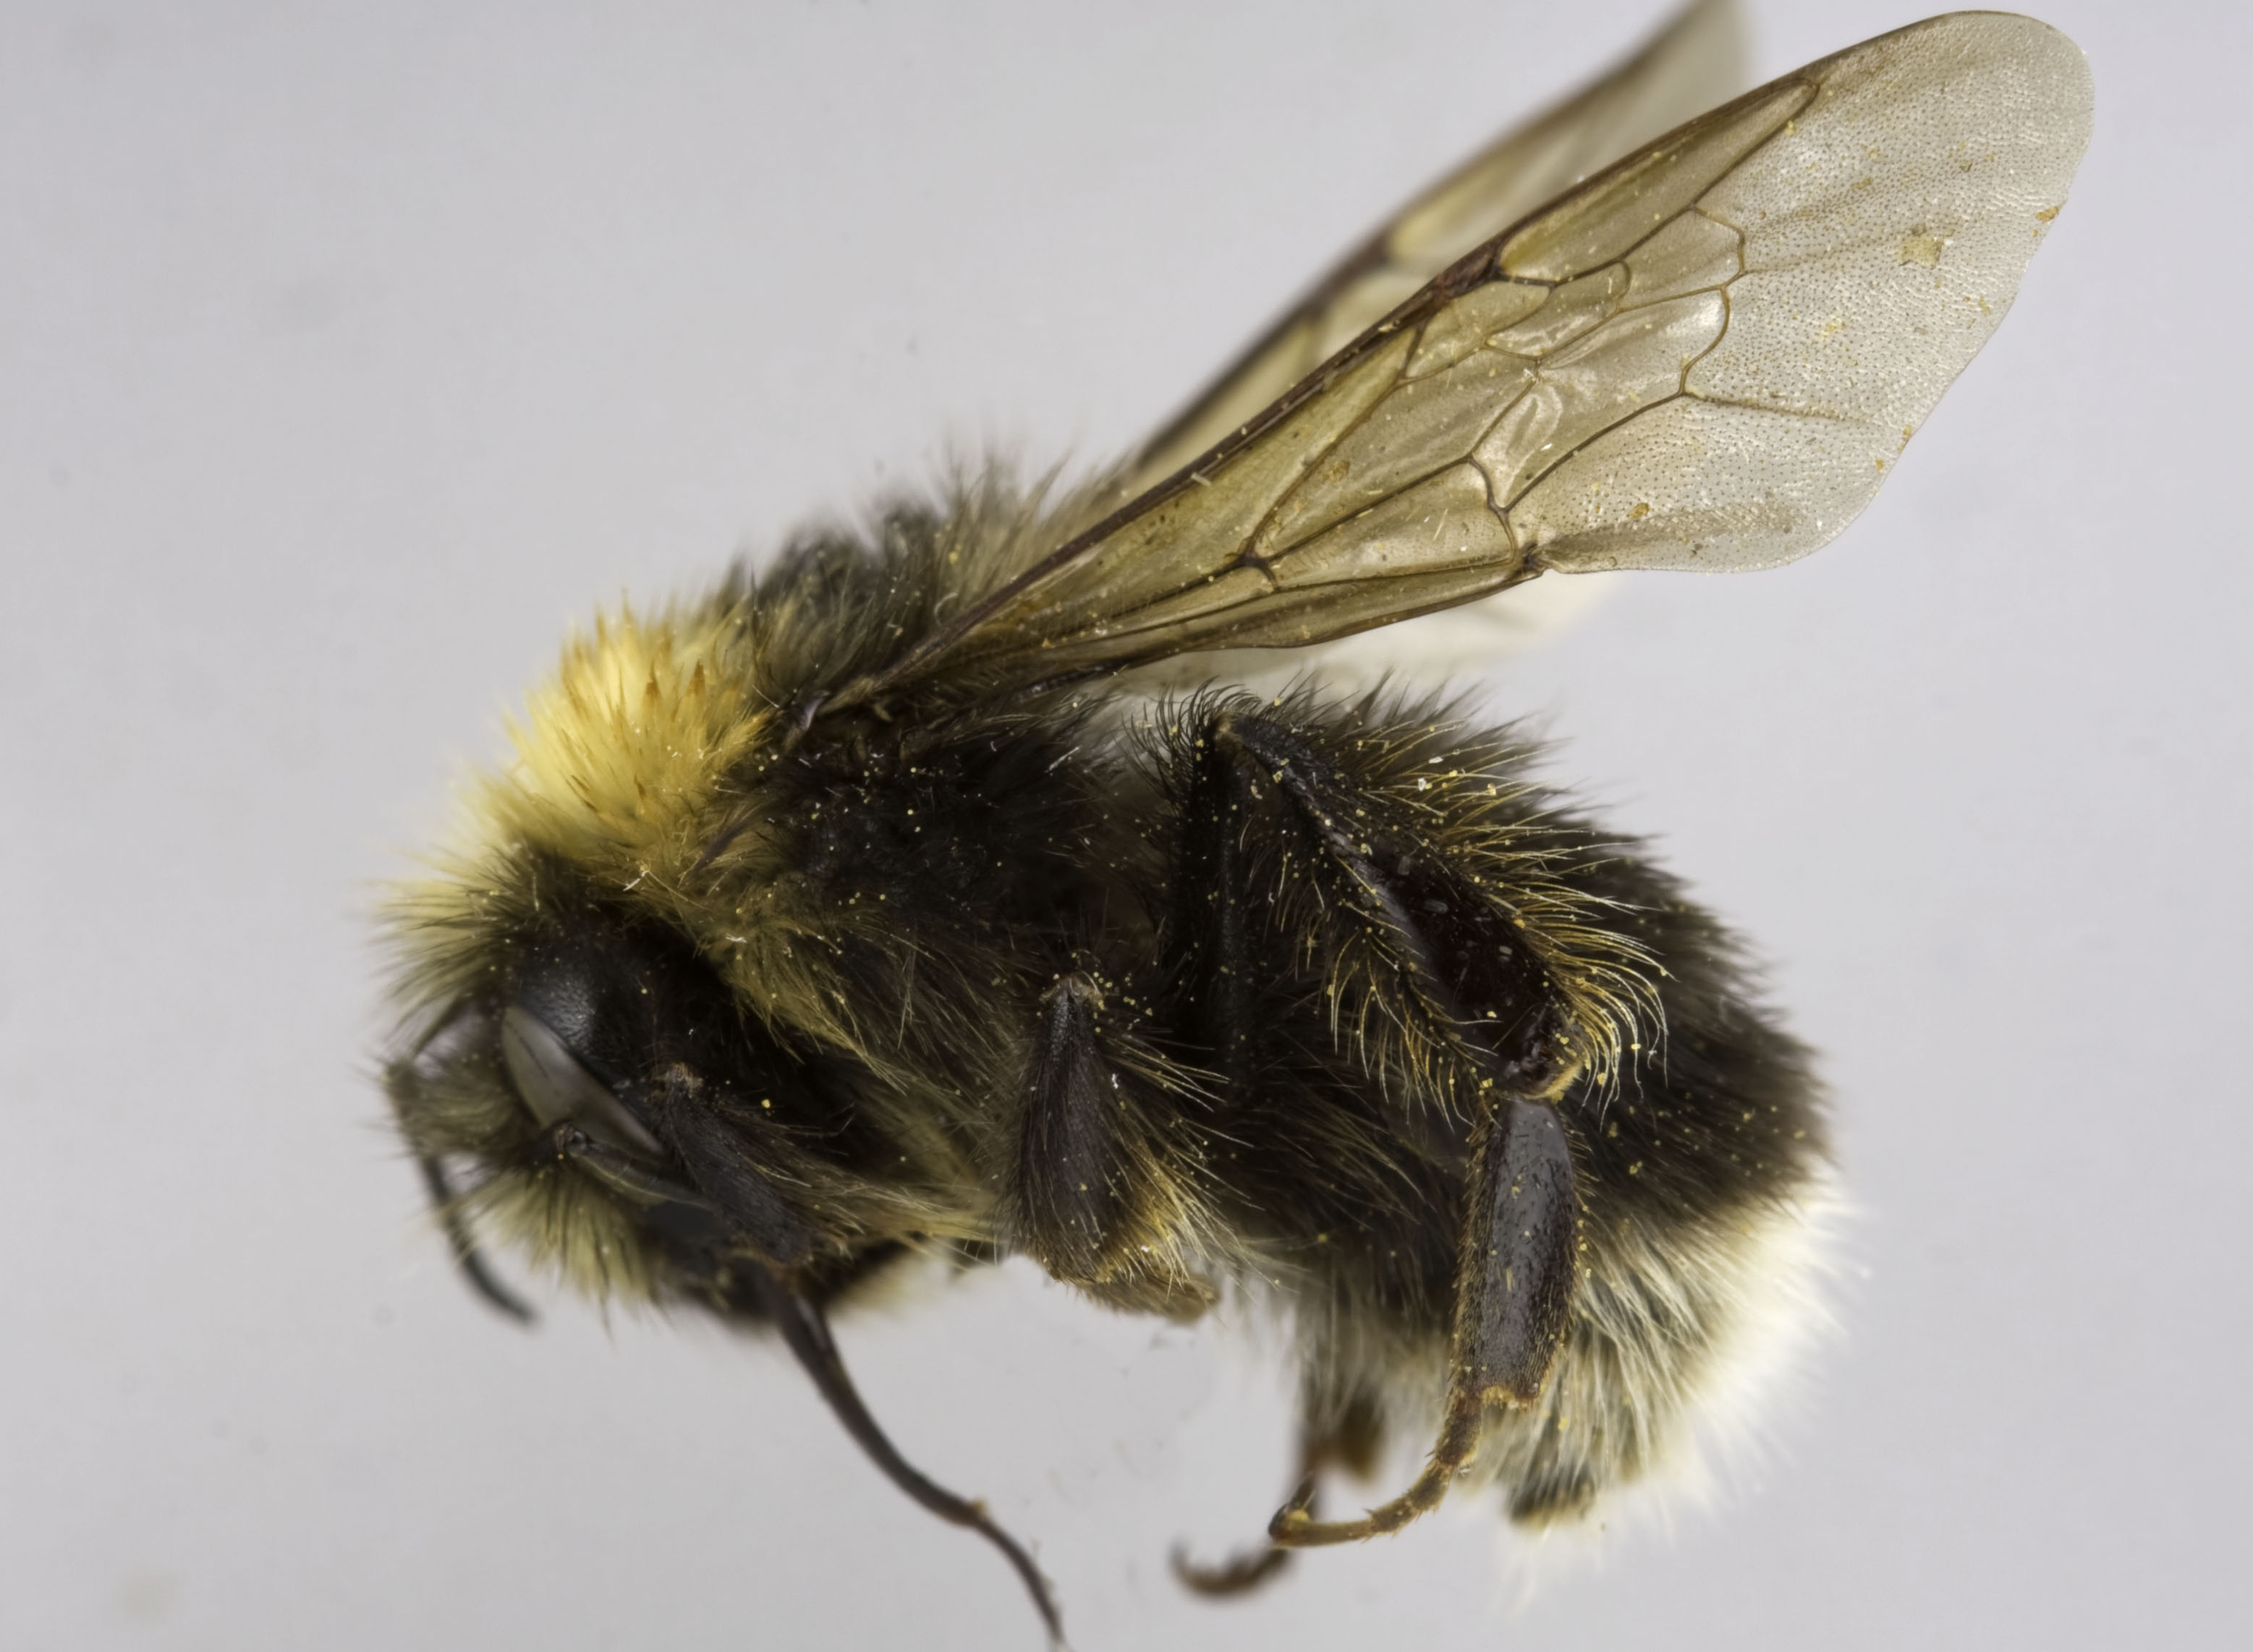 Giant bumble bee pictures Bee Stings - how honey bees and bumblebees sting